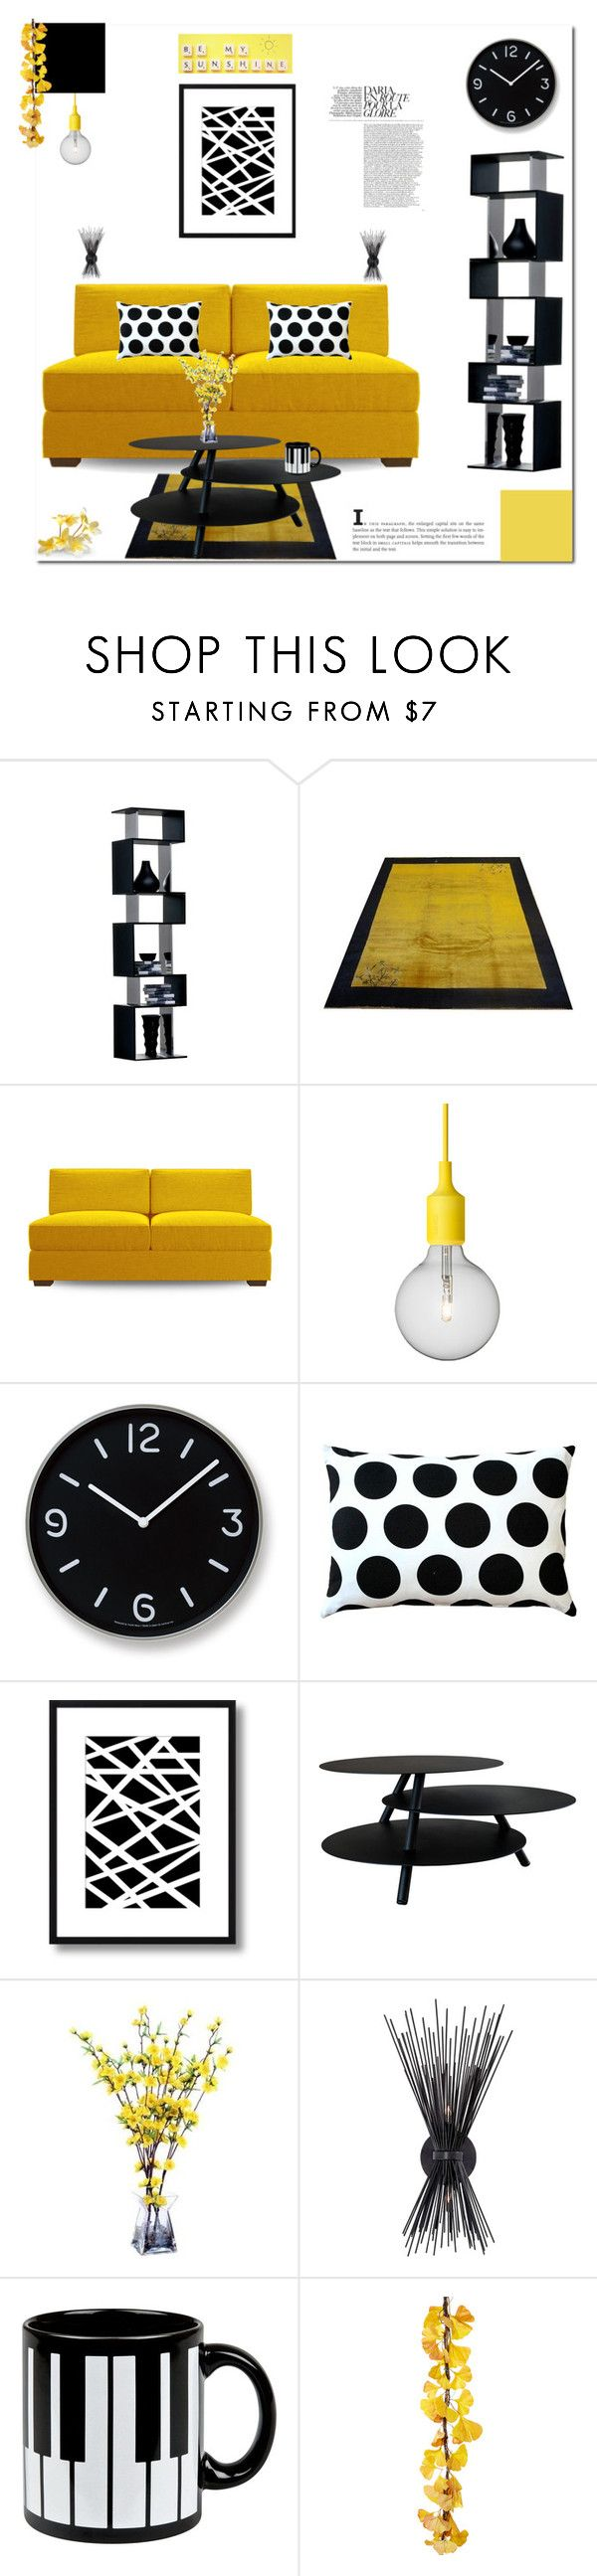 """""""Home (8/25/2015)"""" by aneetaalex on Polyvore featuring interior, interiors, interior design, home, home decor, interior decorating, Joybird Furniture, Muuto, Lemnos and Pillow Decor"""